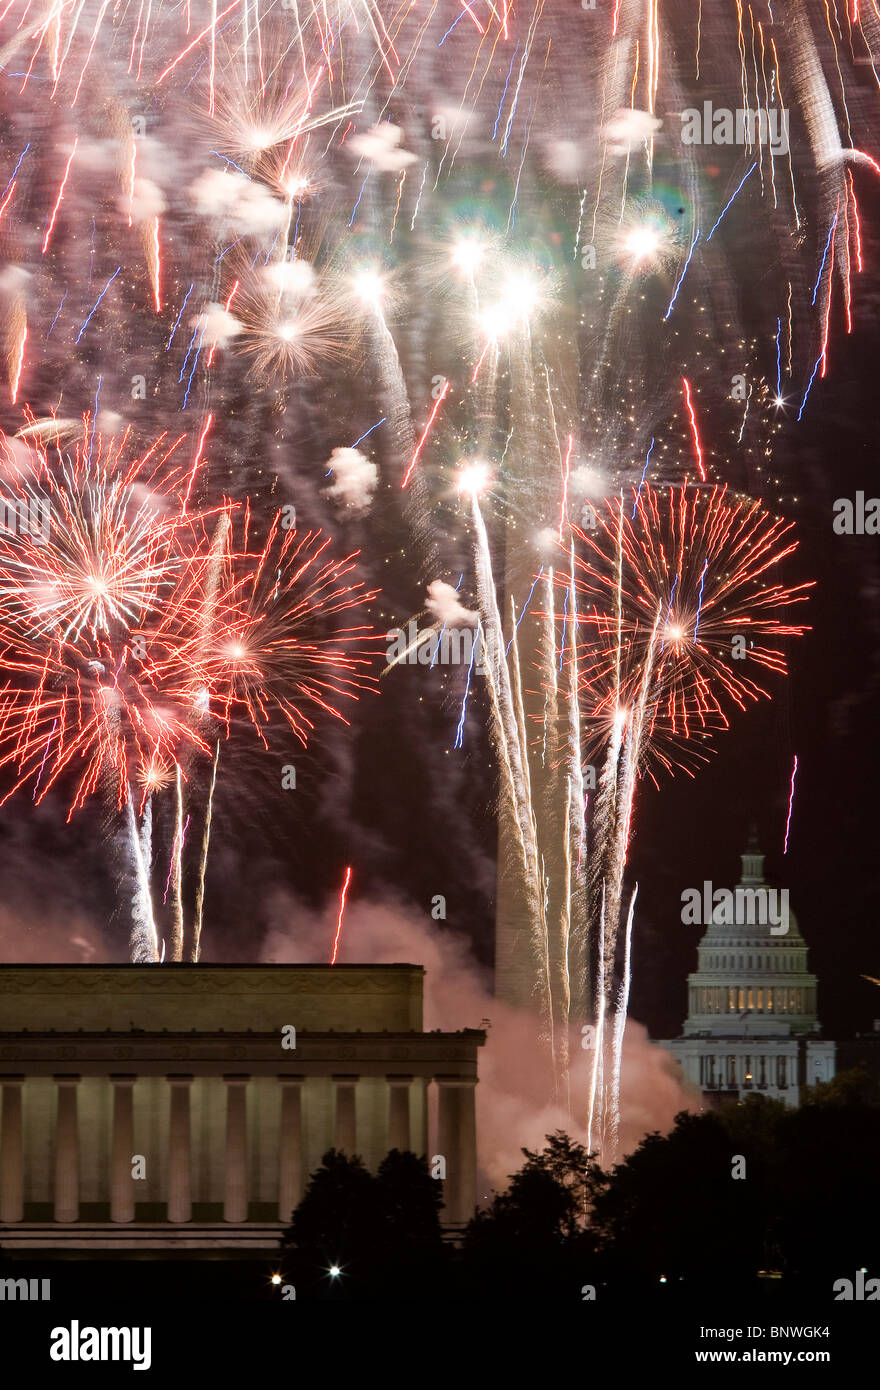 D'artifice du 4 juillet à Washington, DC. Banque D'Images